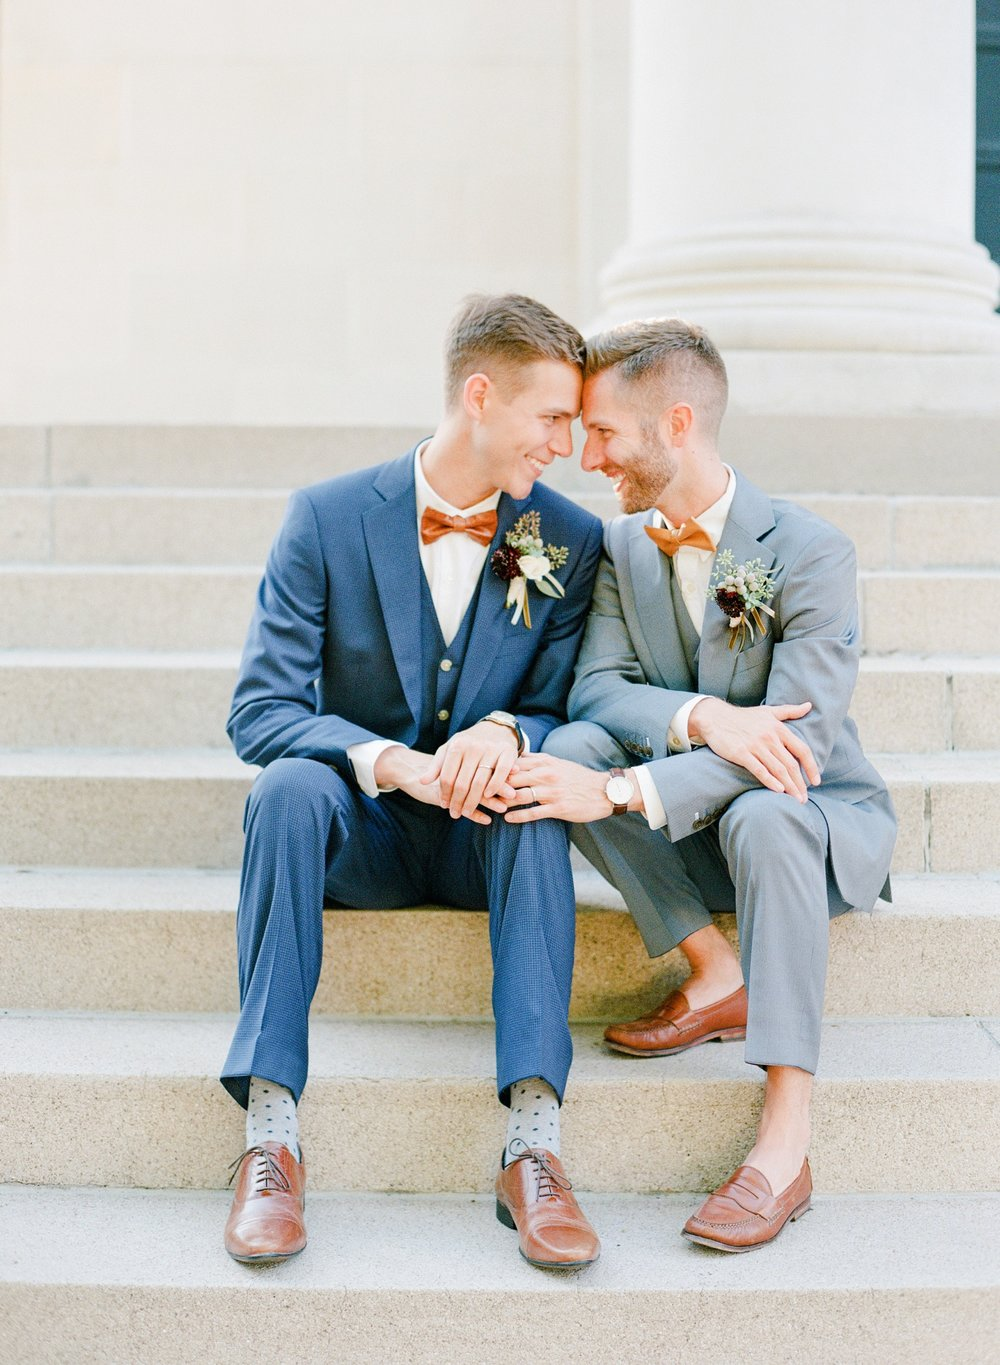 Handsome-Groom-Photos.jpg